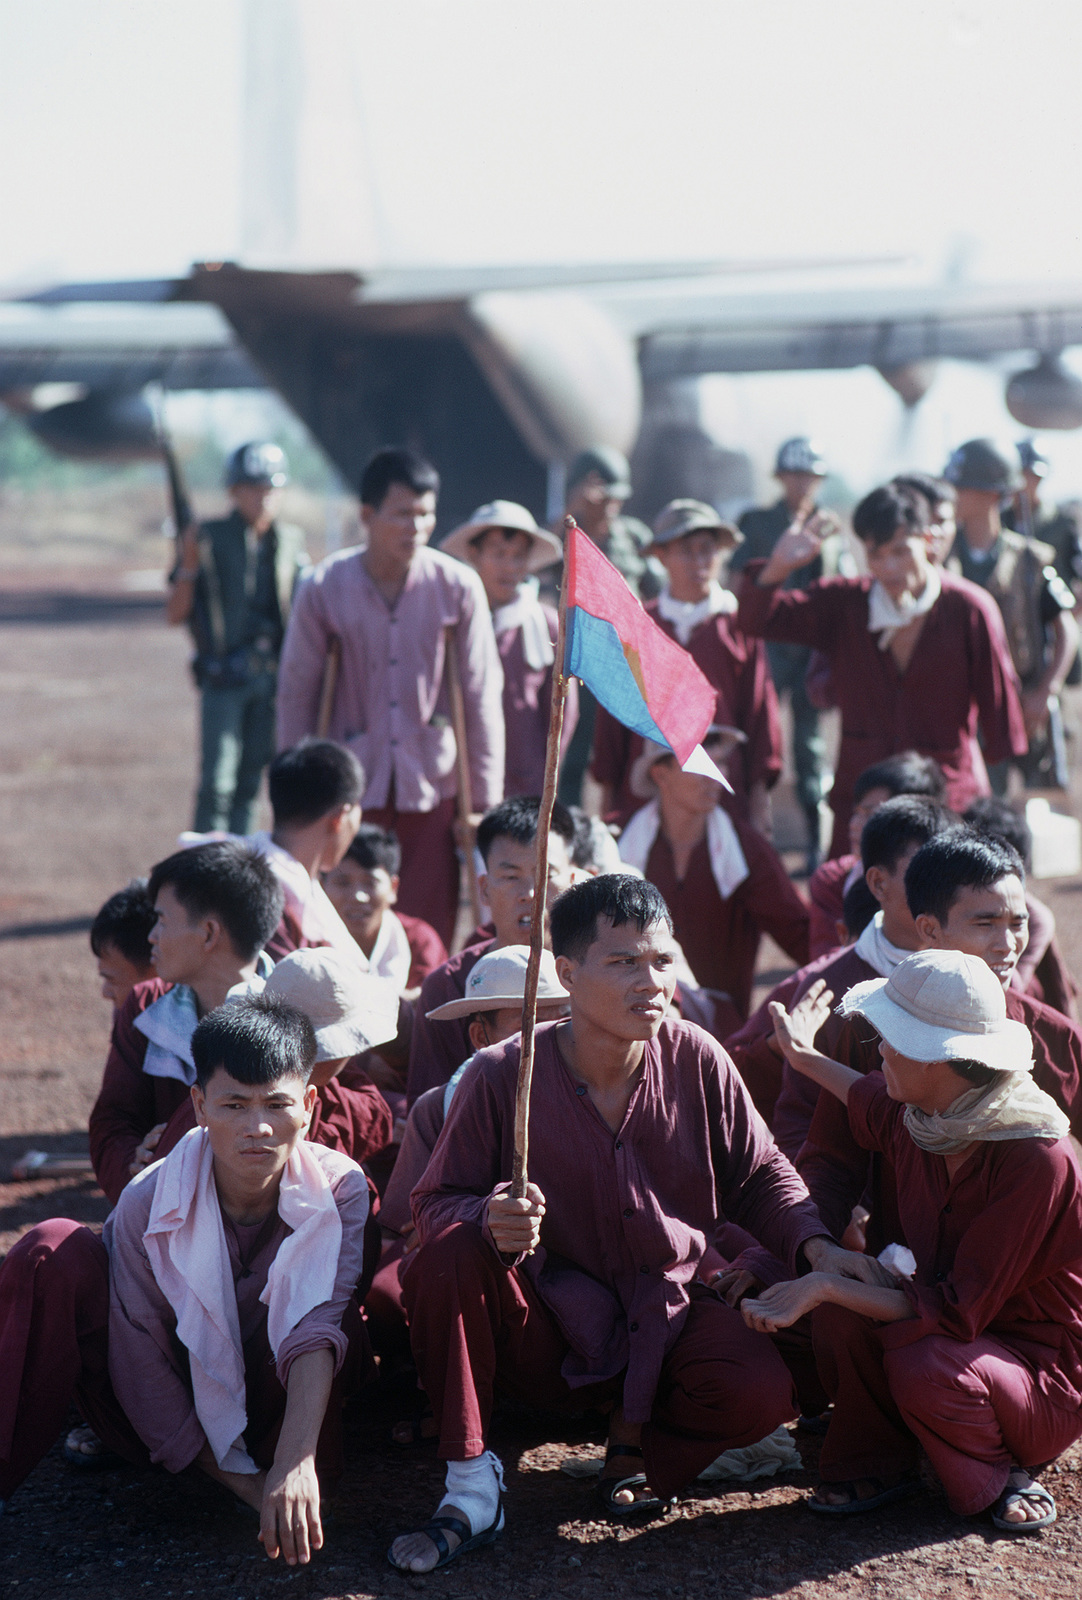 Viet Cong POWs, one with a Viet Cong flag, stand and sit at the exchange location. They were flown in on USAF C-130 aircraft from Bien Hoa Air Base. They will be exchanged for American and South Vietnamese POWs held by the Viet Cong forces